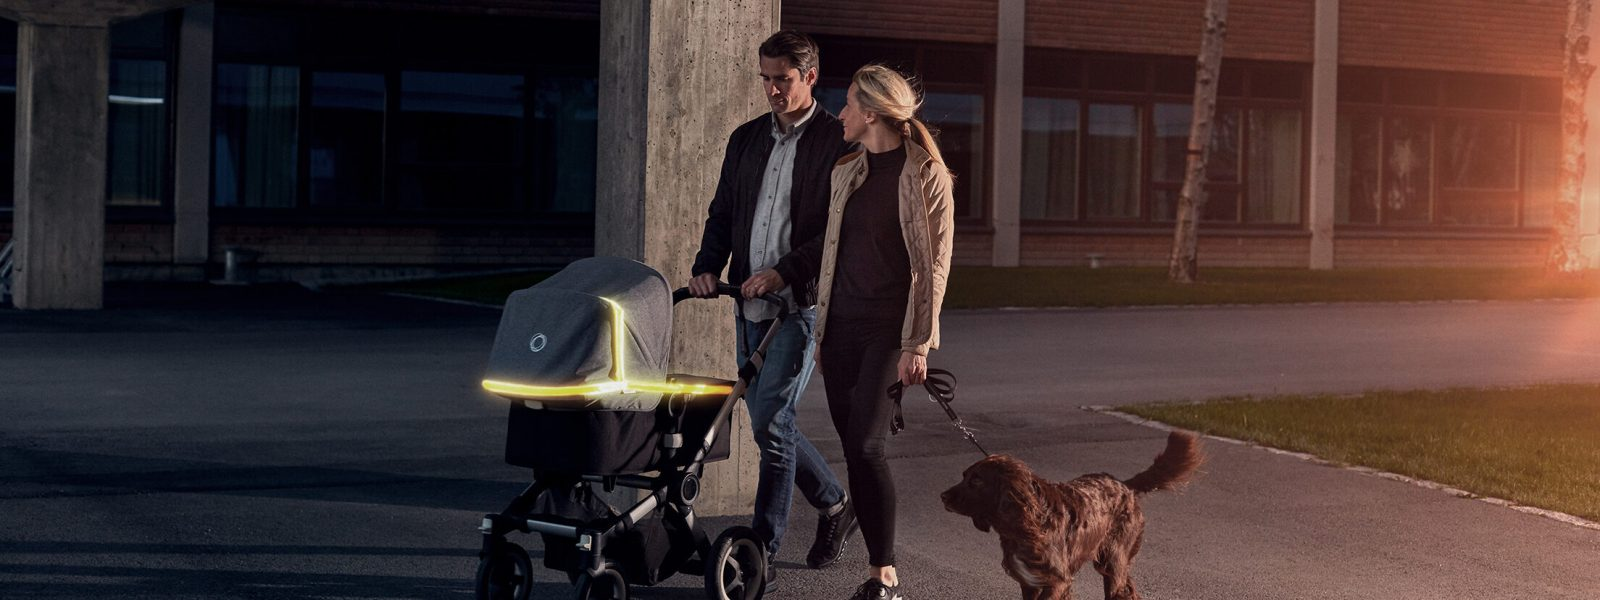 LED Light Stroller